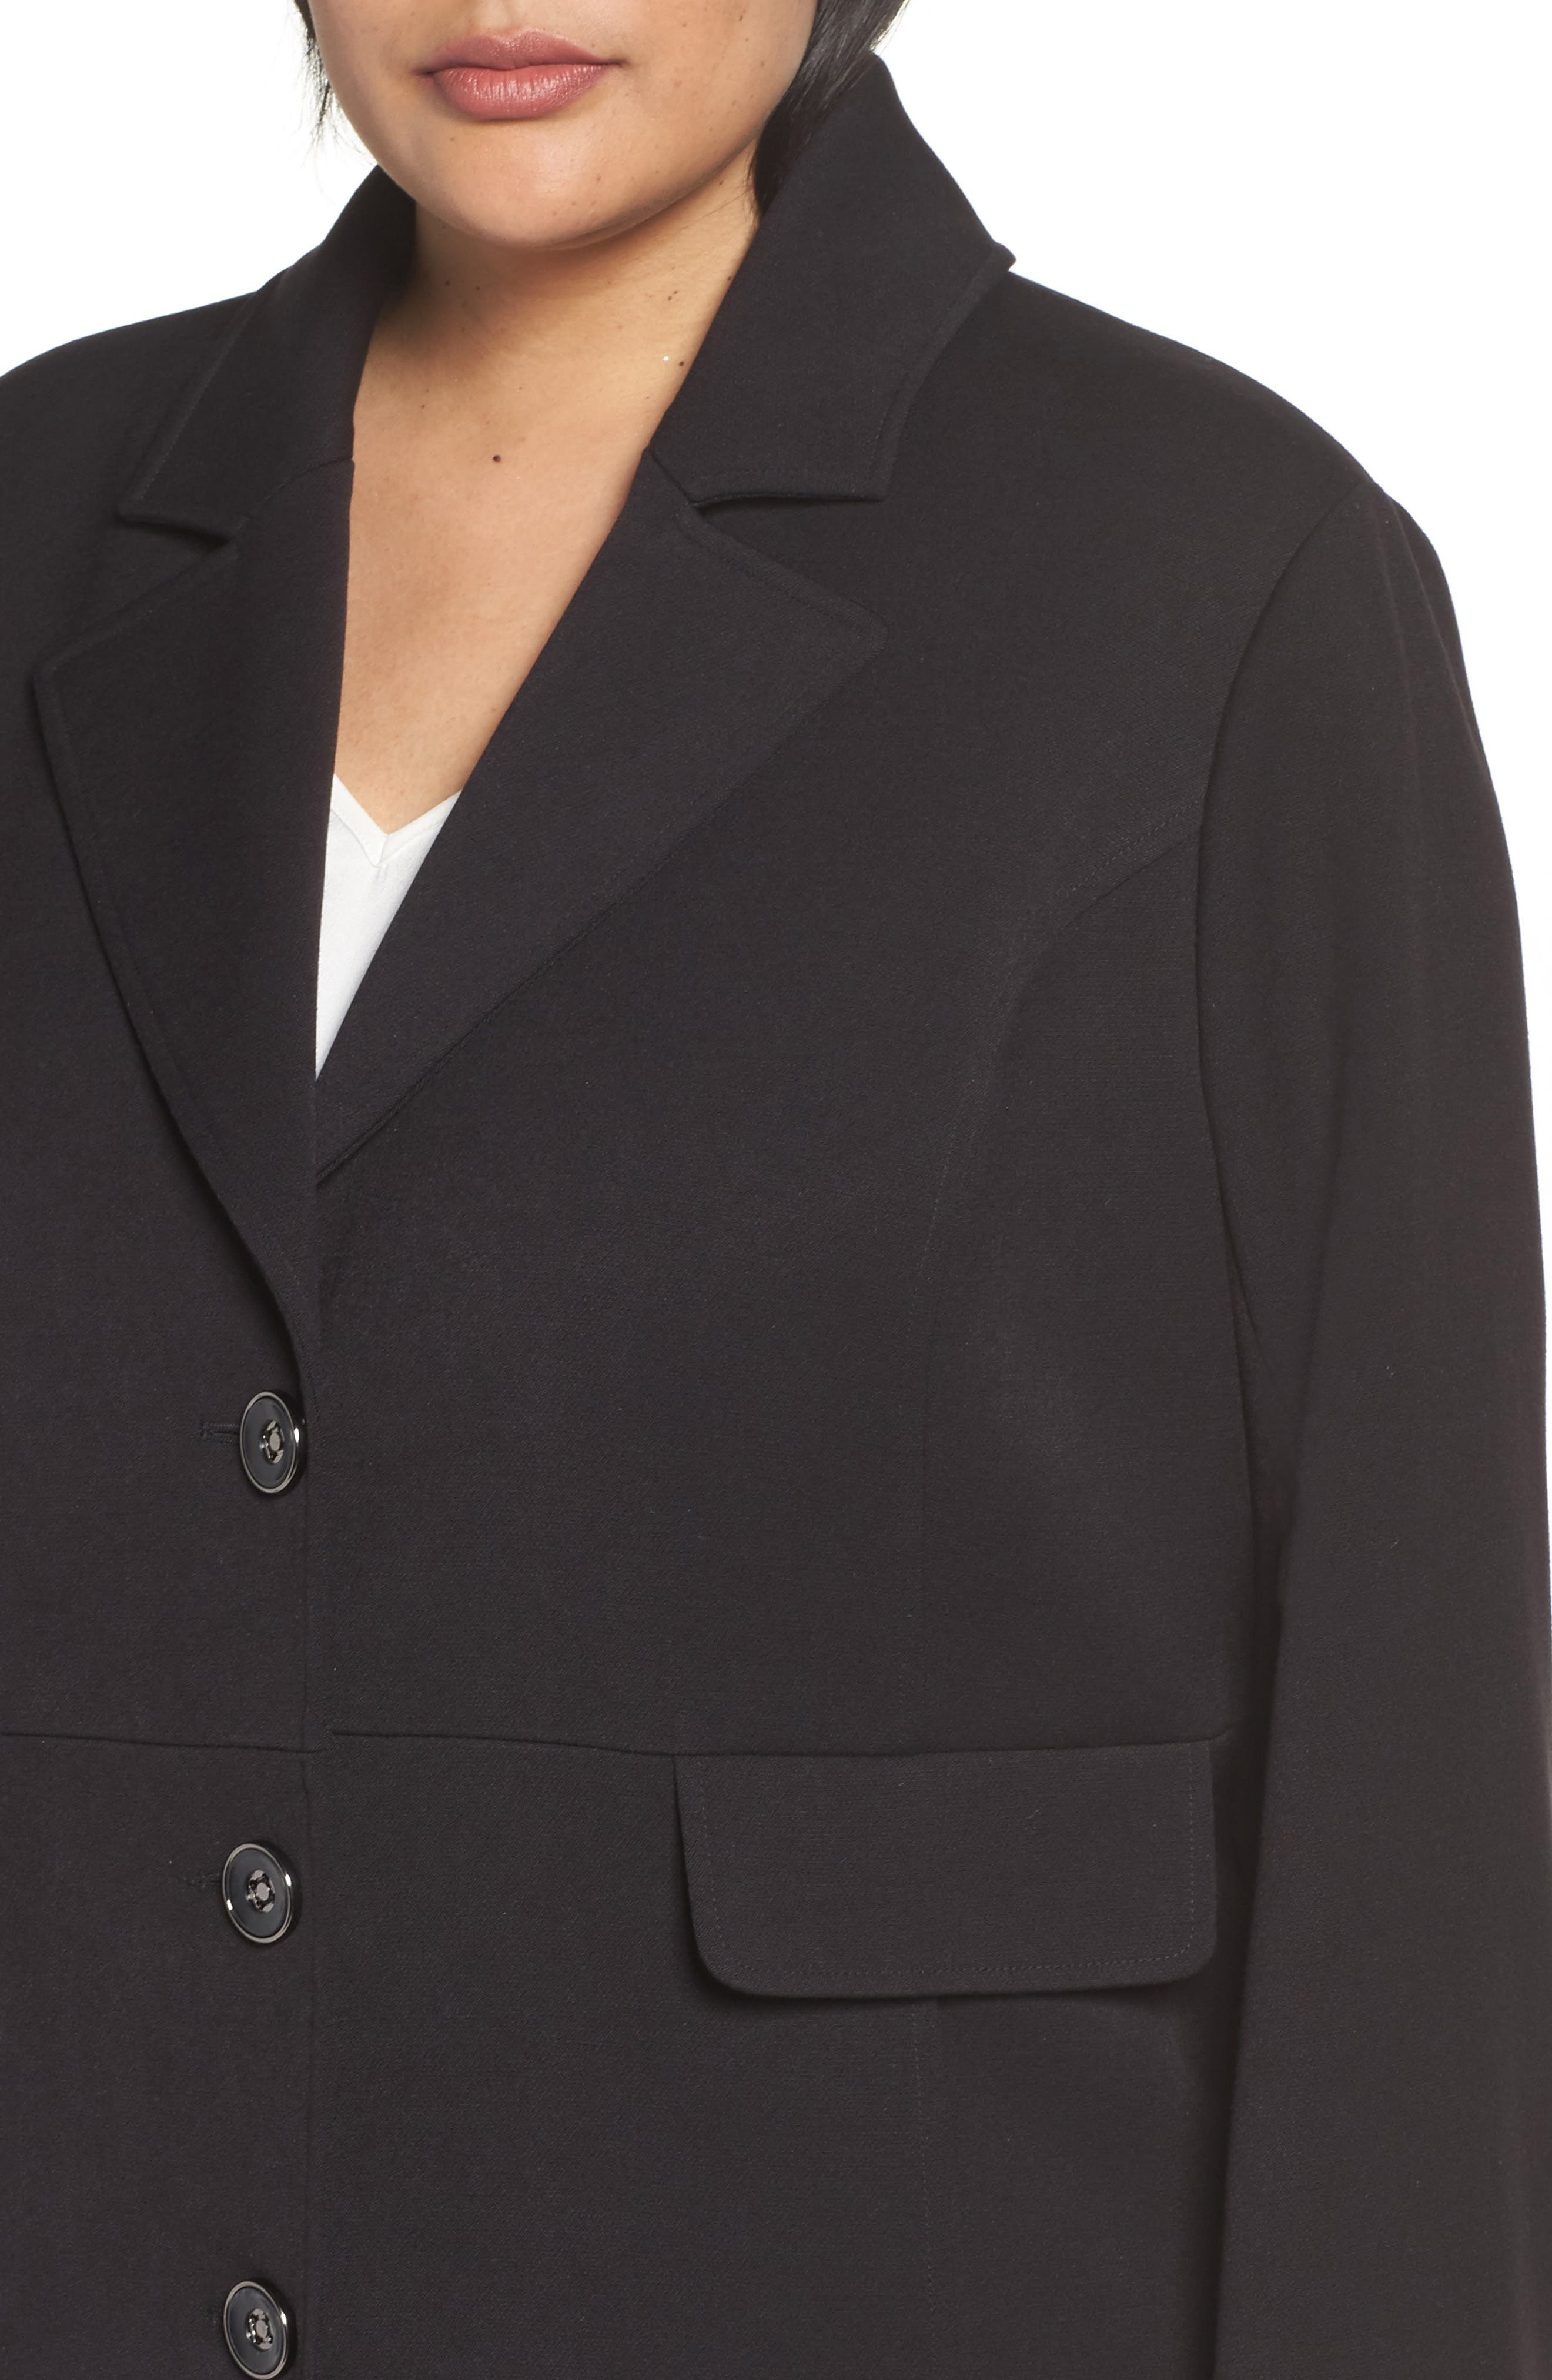 Single Breasted Ponte Coat,                             Alternate thumbnail 4, color,                             Black